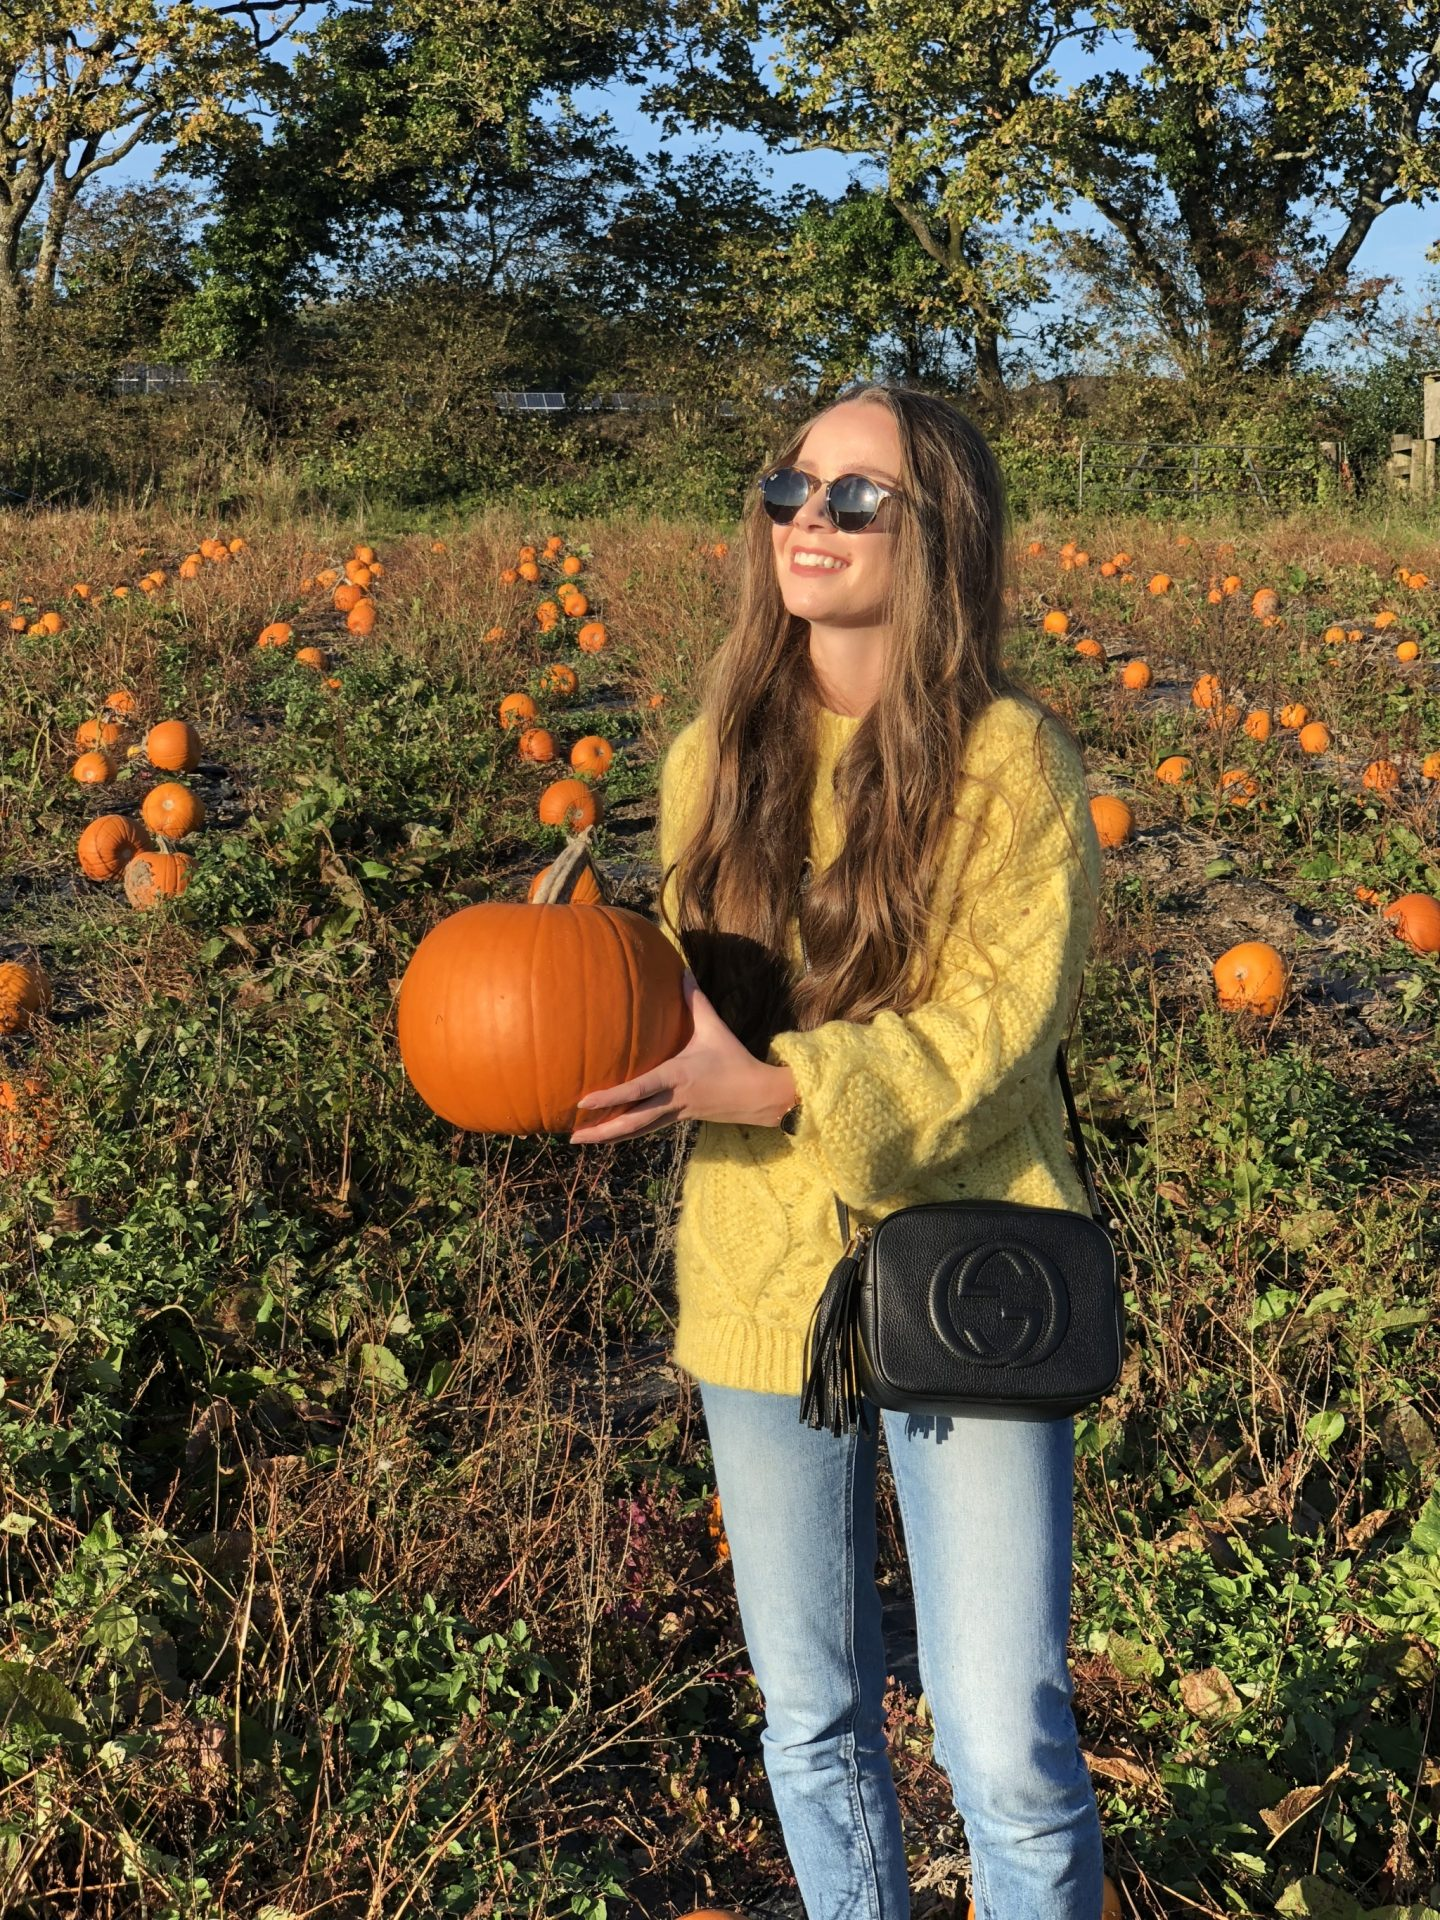 lifton farm pumpkin fest